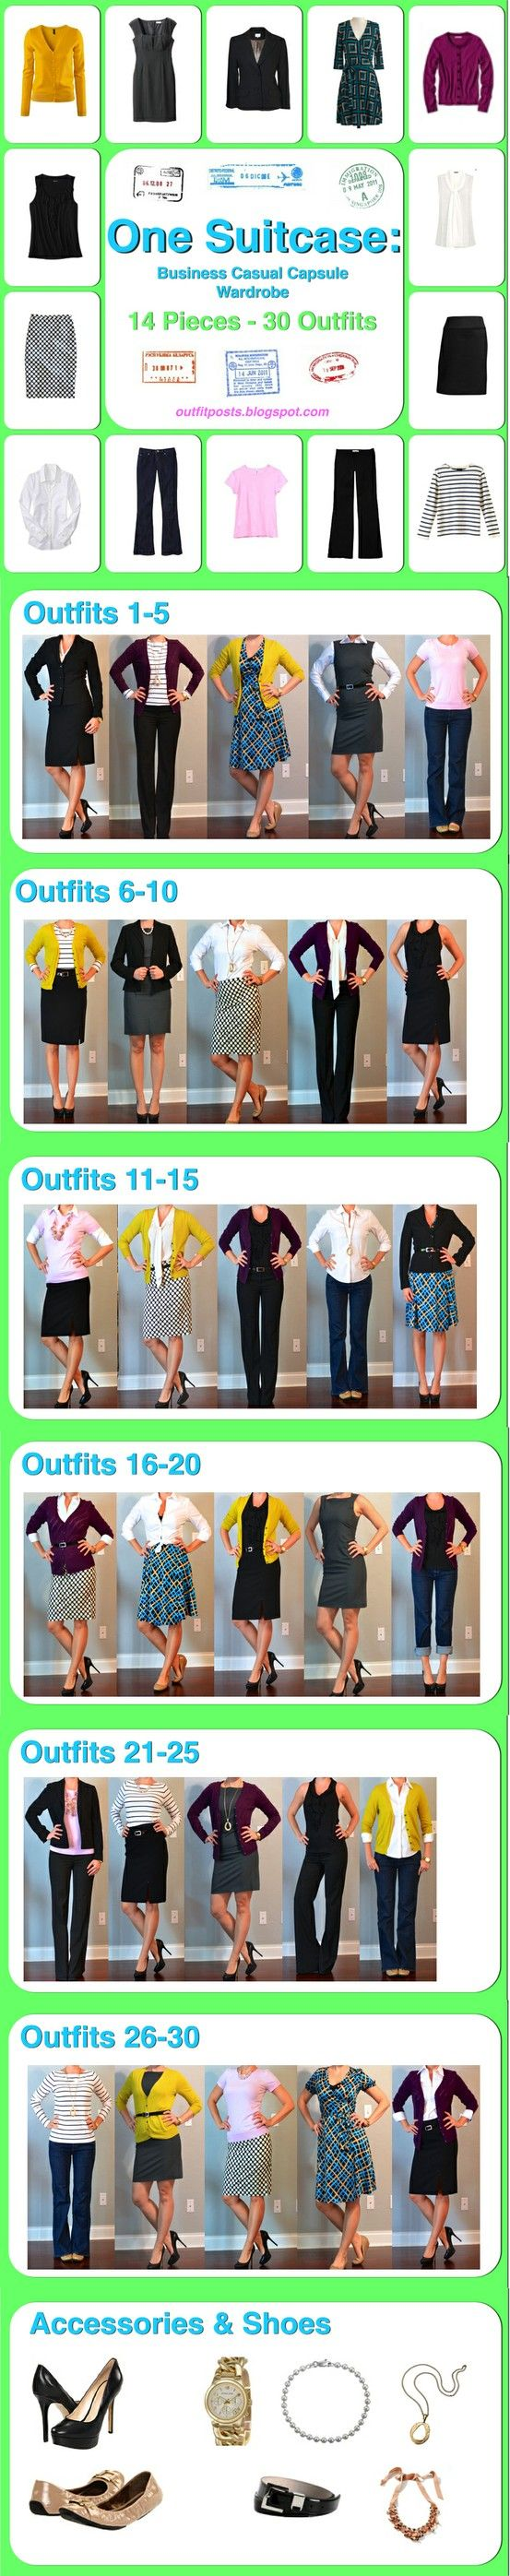 One Suitcase, 30 outfits